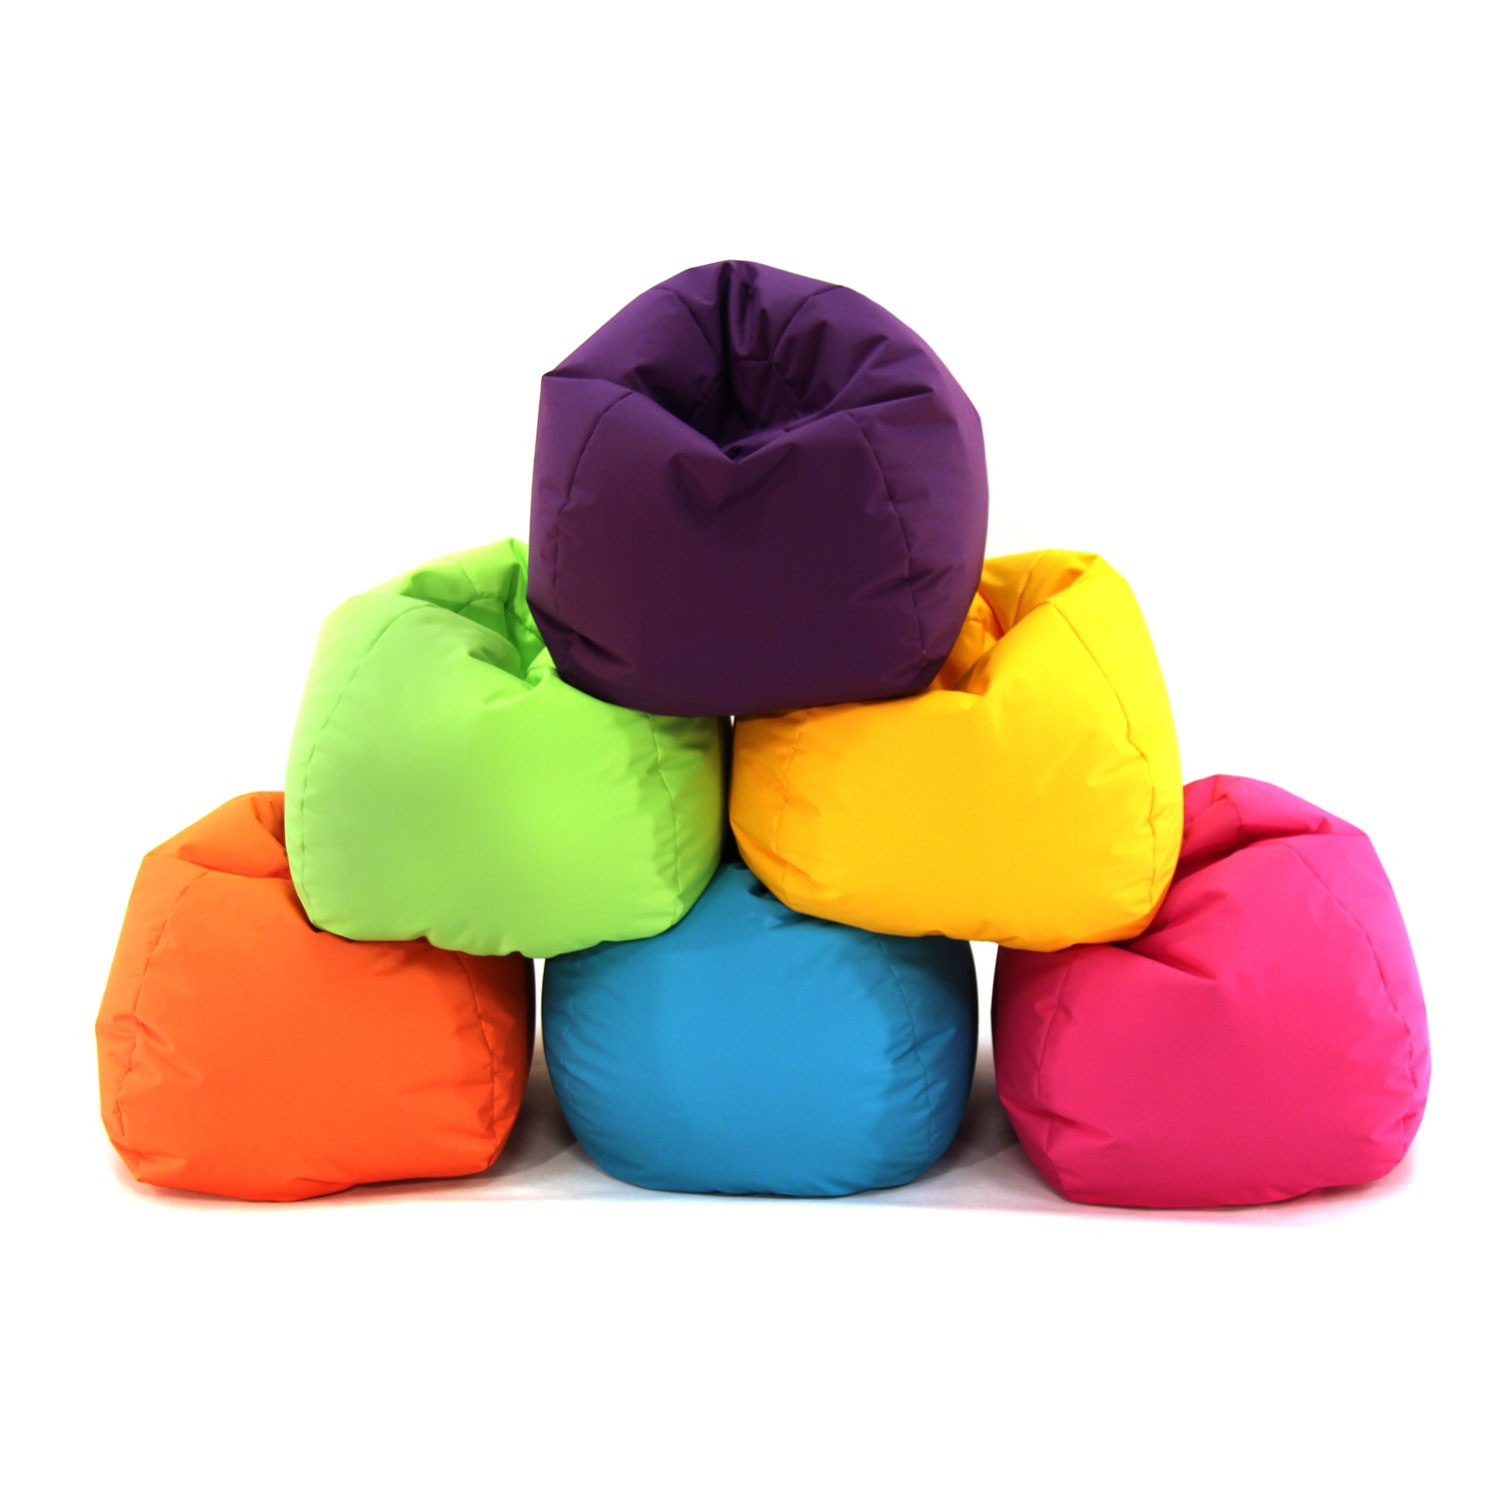 What Are The Different Uses Of Bean Bags In Perth